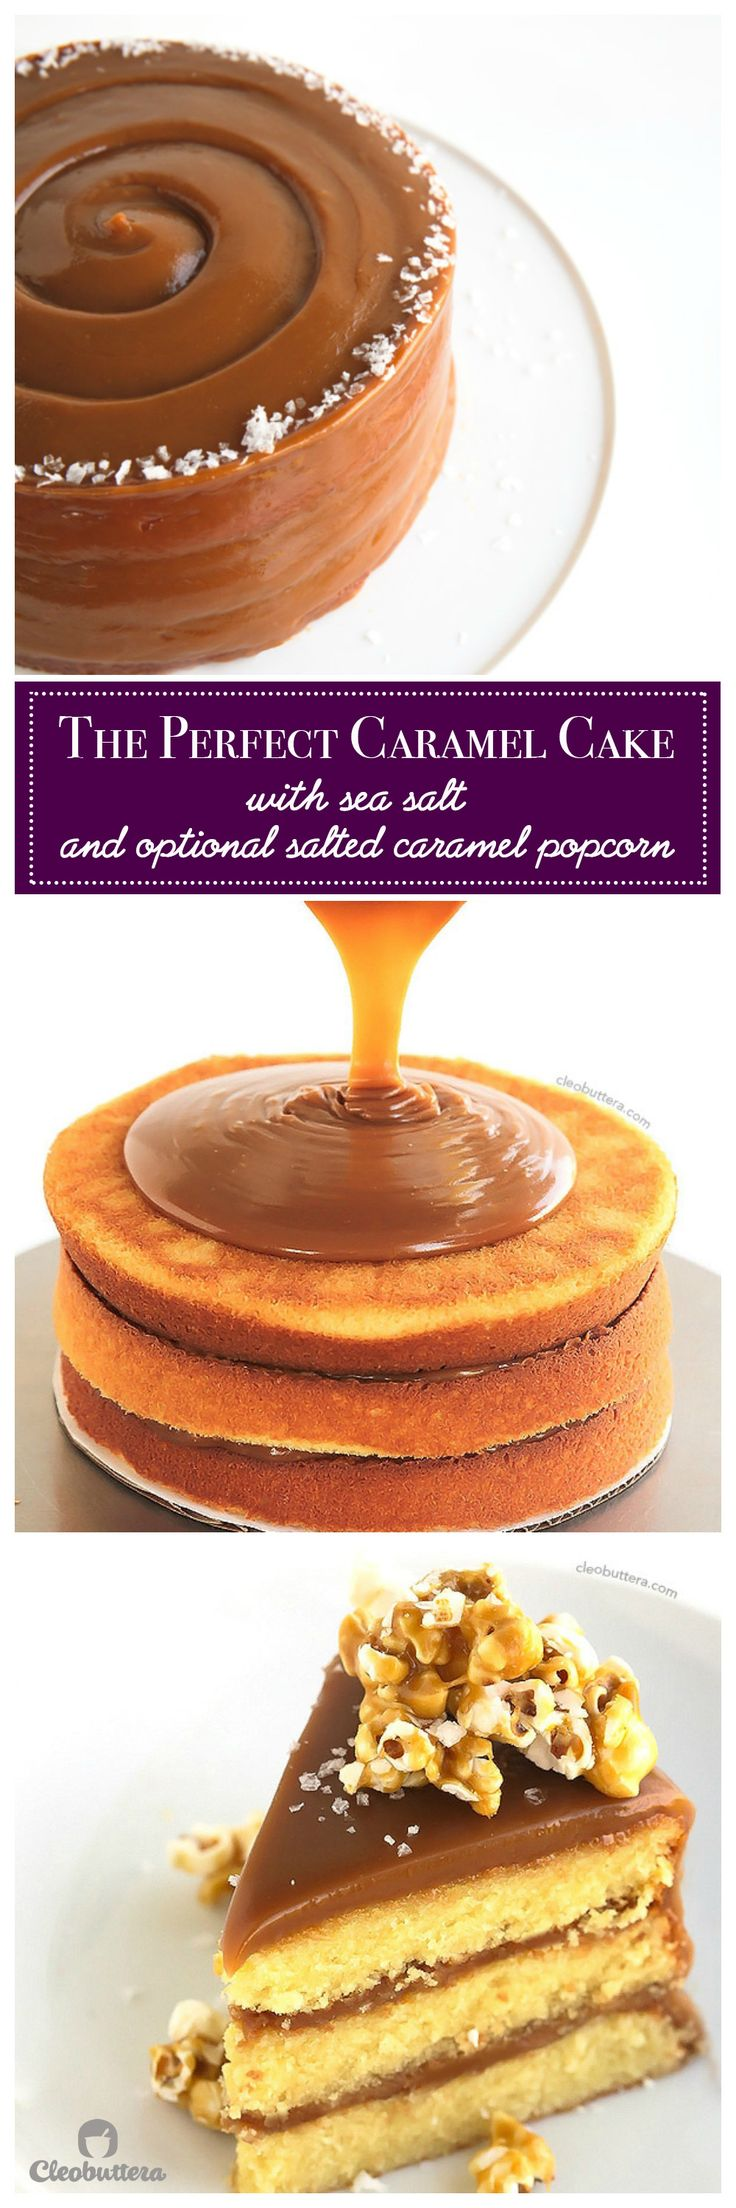 The best yellow cake you've ever had, filled and covered with the creamiest, not-too-sweet caramel icing, sprinkled with sea salt and topped with optional salted caramel popcorn for a surprise crunch!